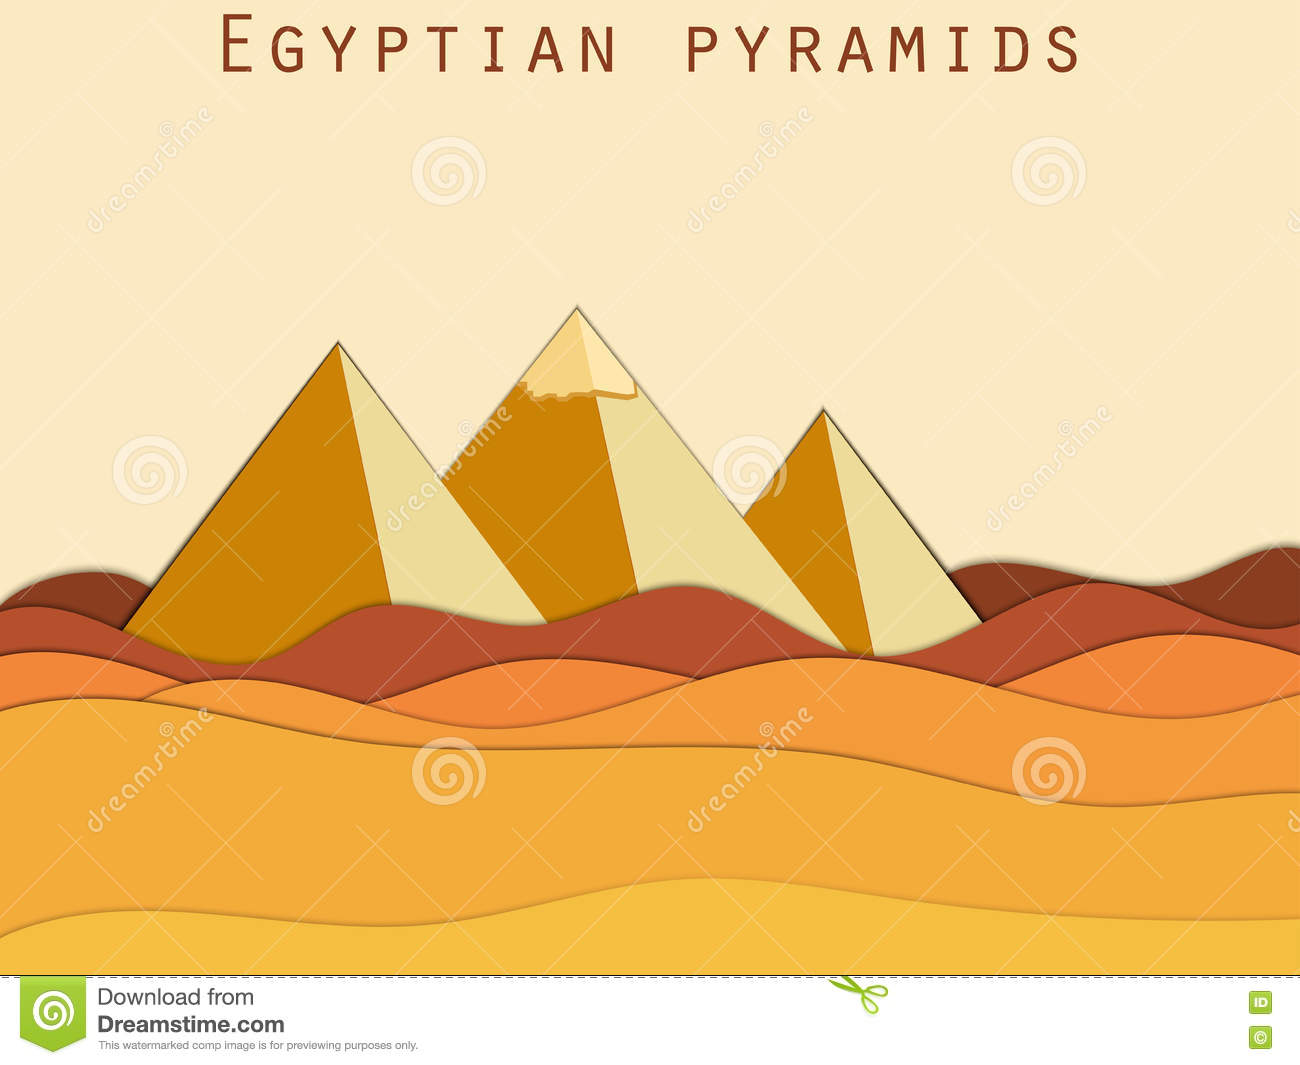 egypt pyramids research papers For centuries, the pyramids of giza have puzzled researchers - not just their  in  a new paper in the journal of ancient egyptian architecture.